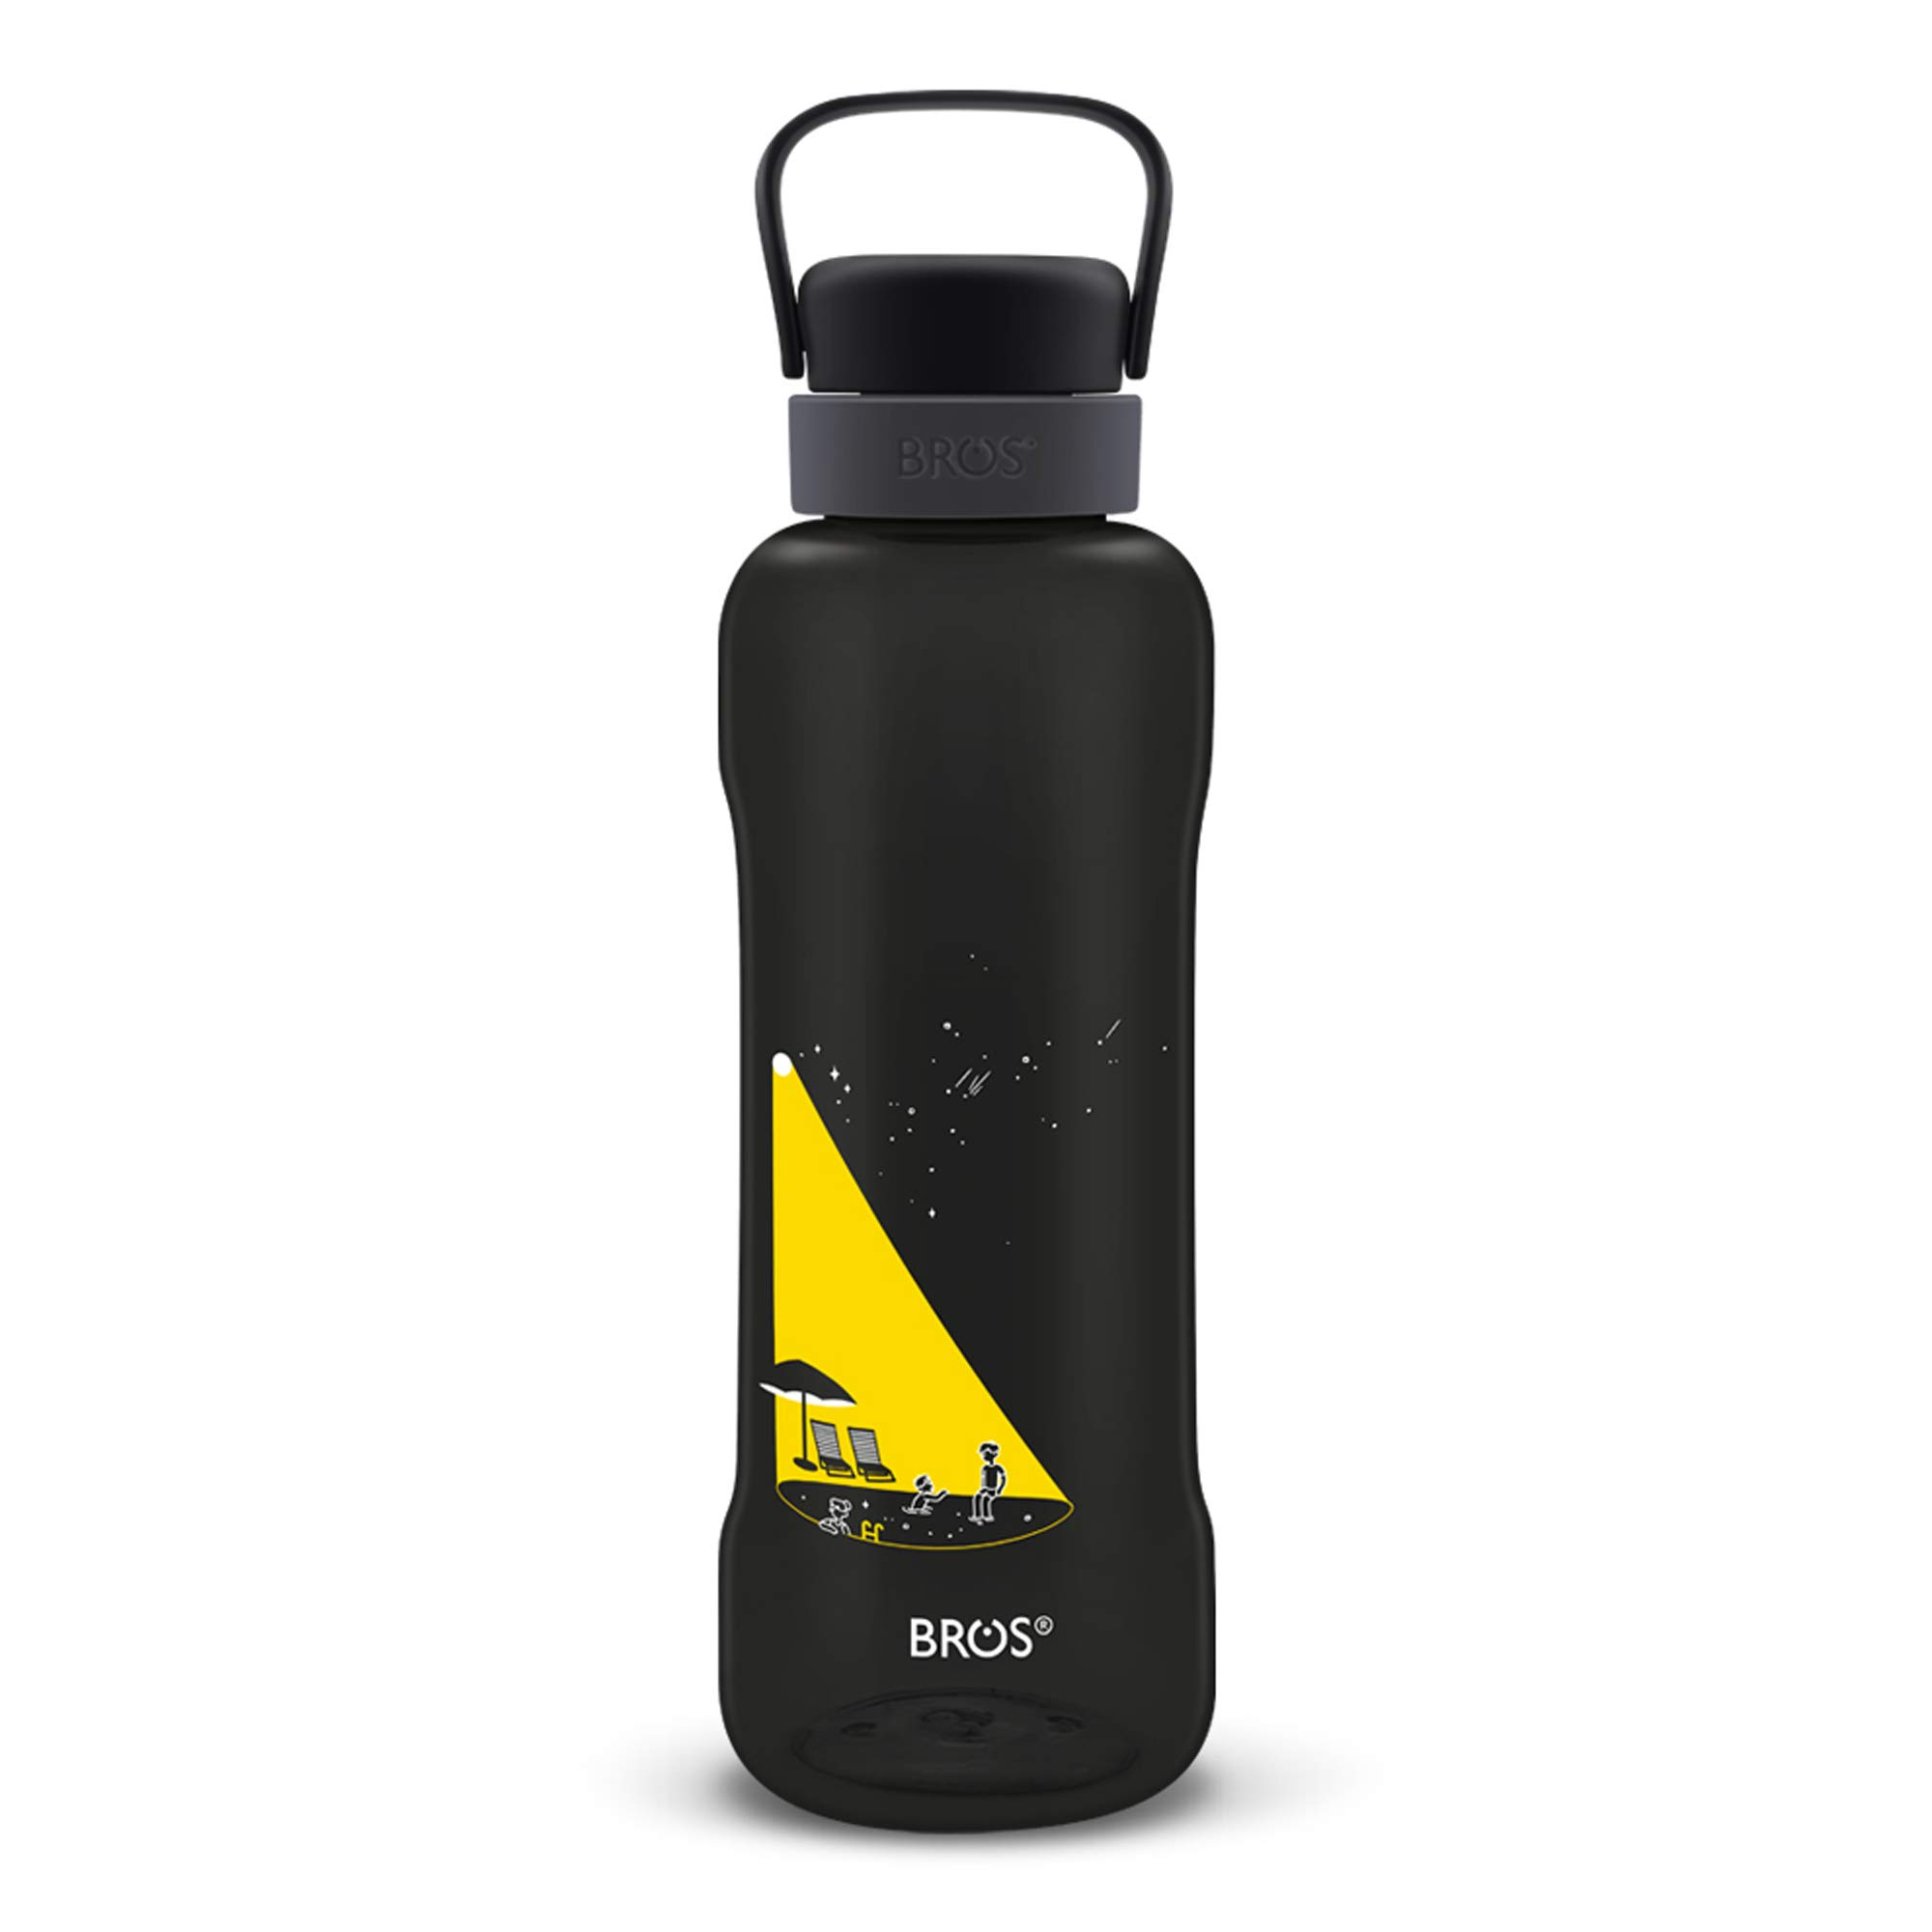 Capa Fitness Perfect for Gym Dual-Mouth Cap with Flexible Hook Handle to Carry Around BROS BPA Free 51oz Large Sports Water Bottle with Creative Designs Camping Durable and Leak Proof